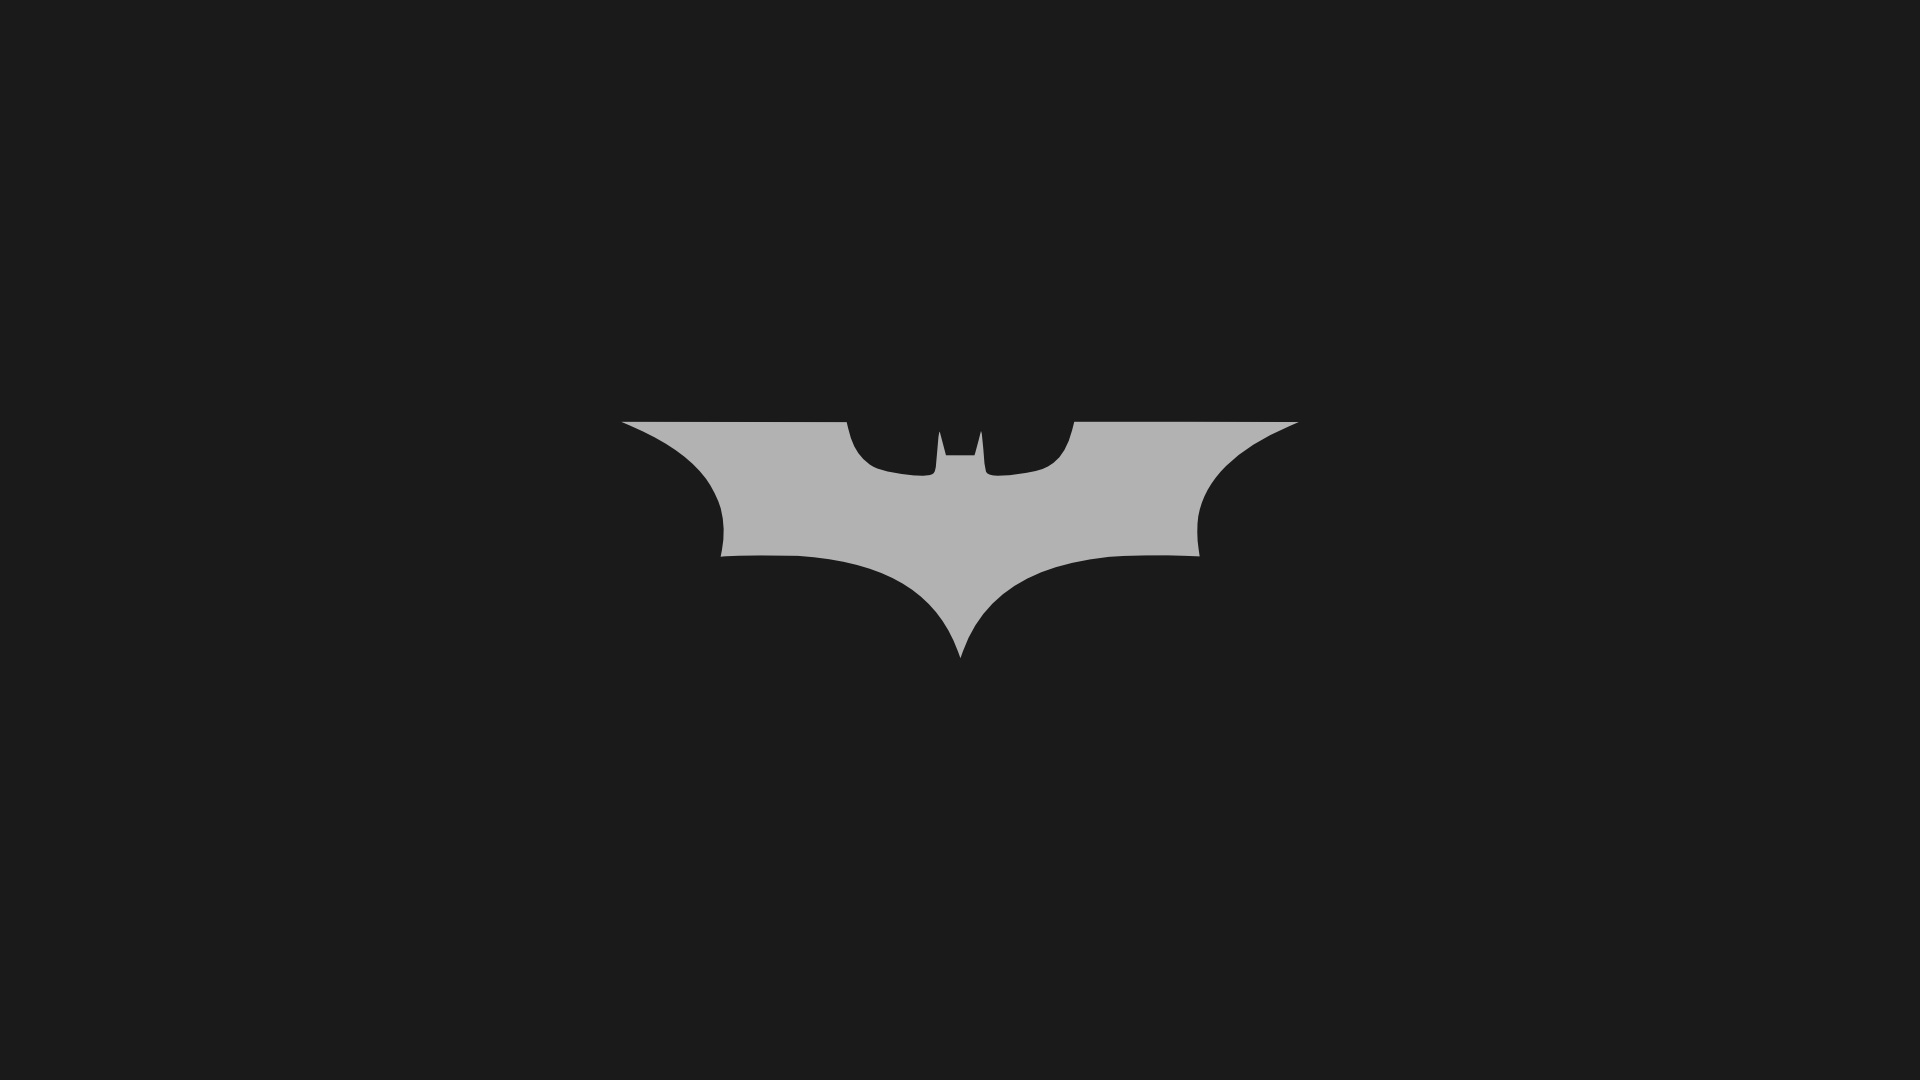 1920x1080 Minimalistic Batman Logo Desktop PC And Mac Wallpaper